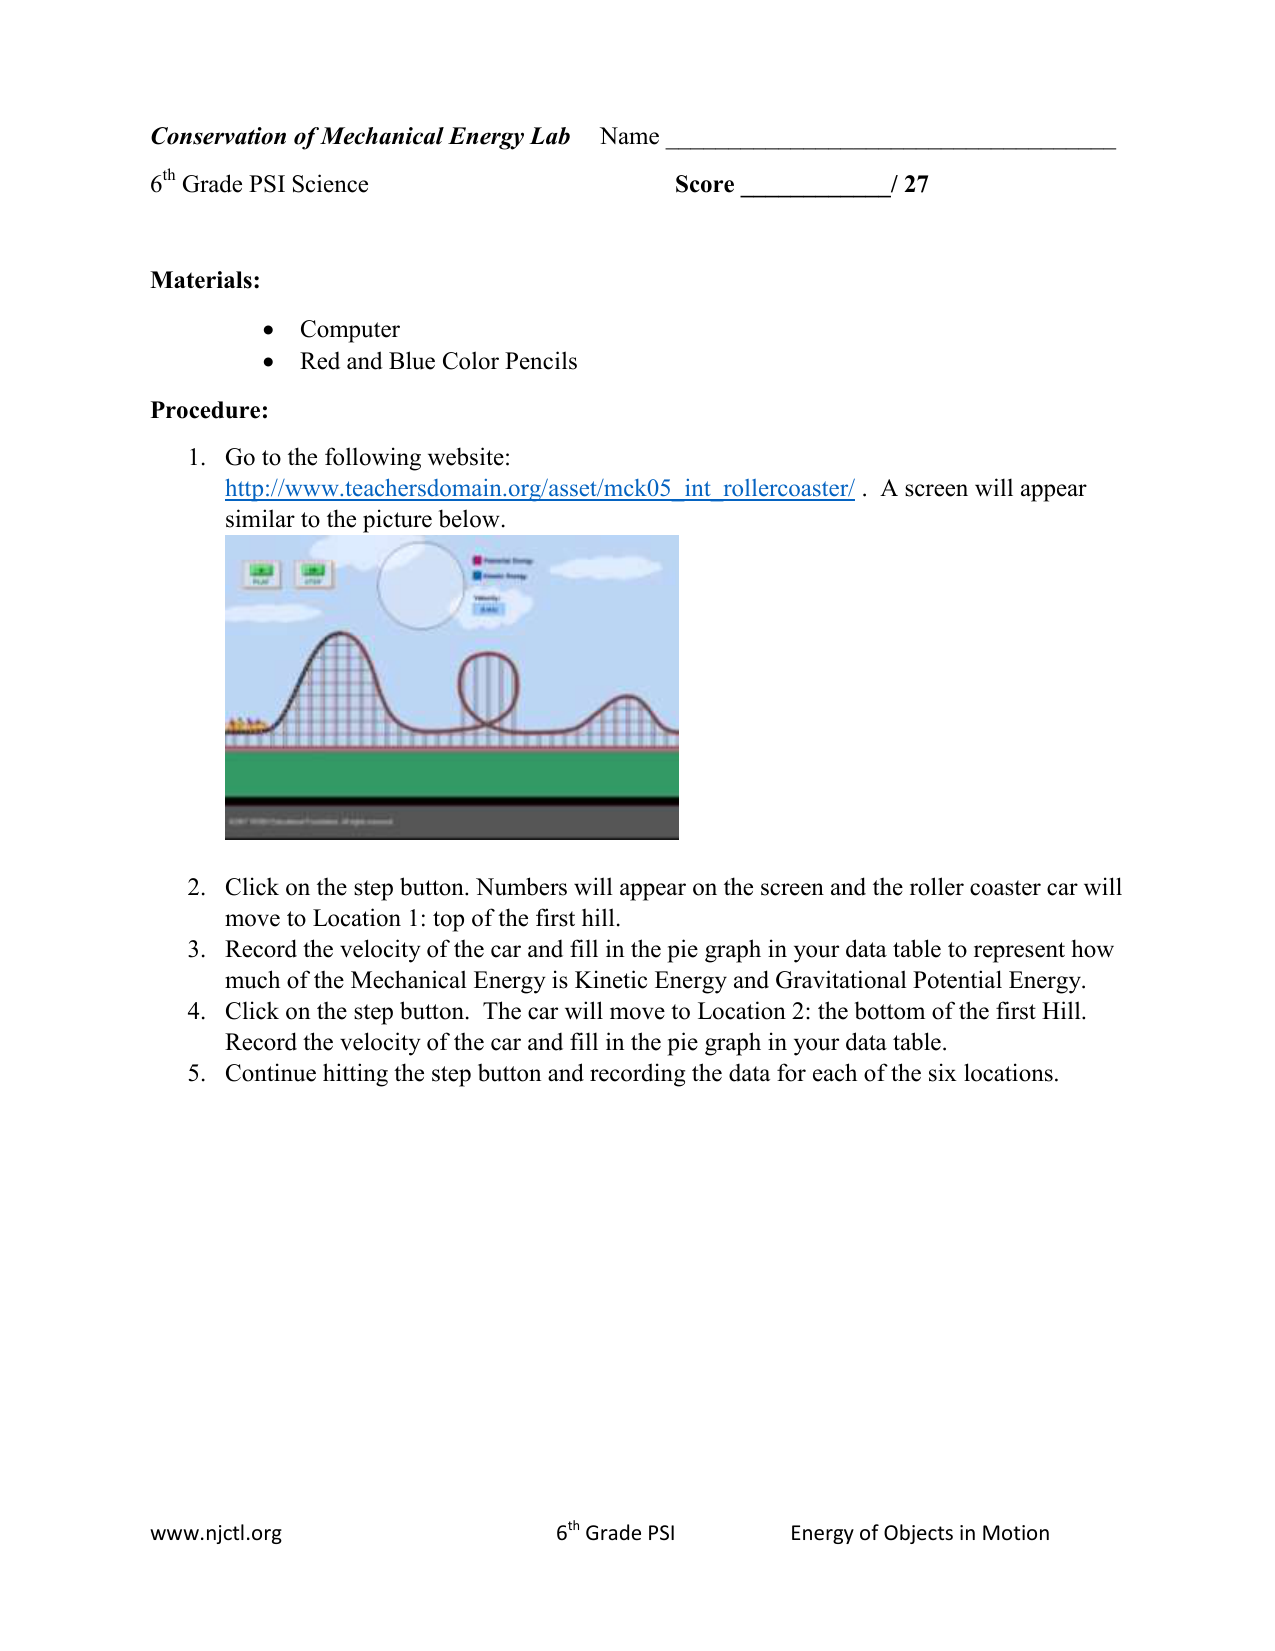 Conservation Of Mechanical Energy Lab Name 6 Grade Psi Science Diagram